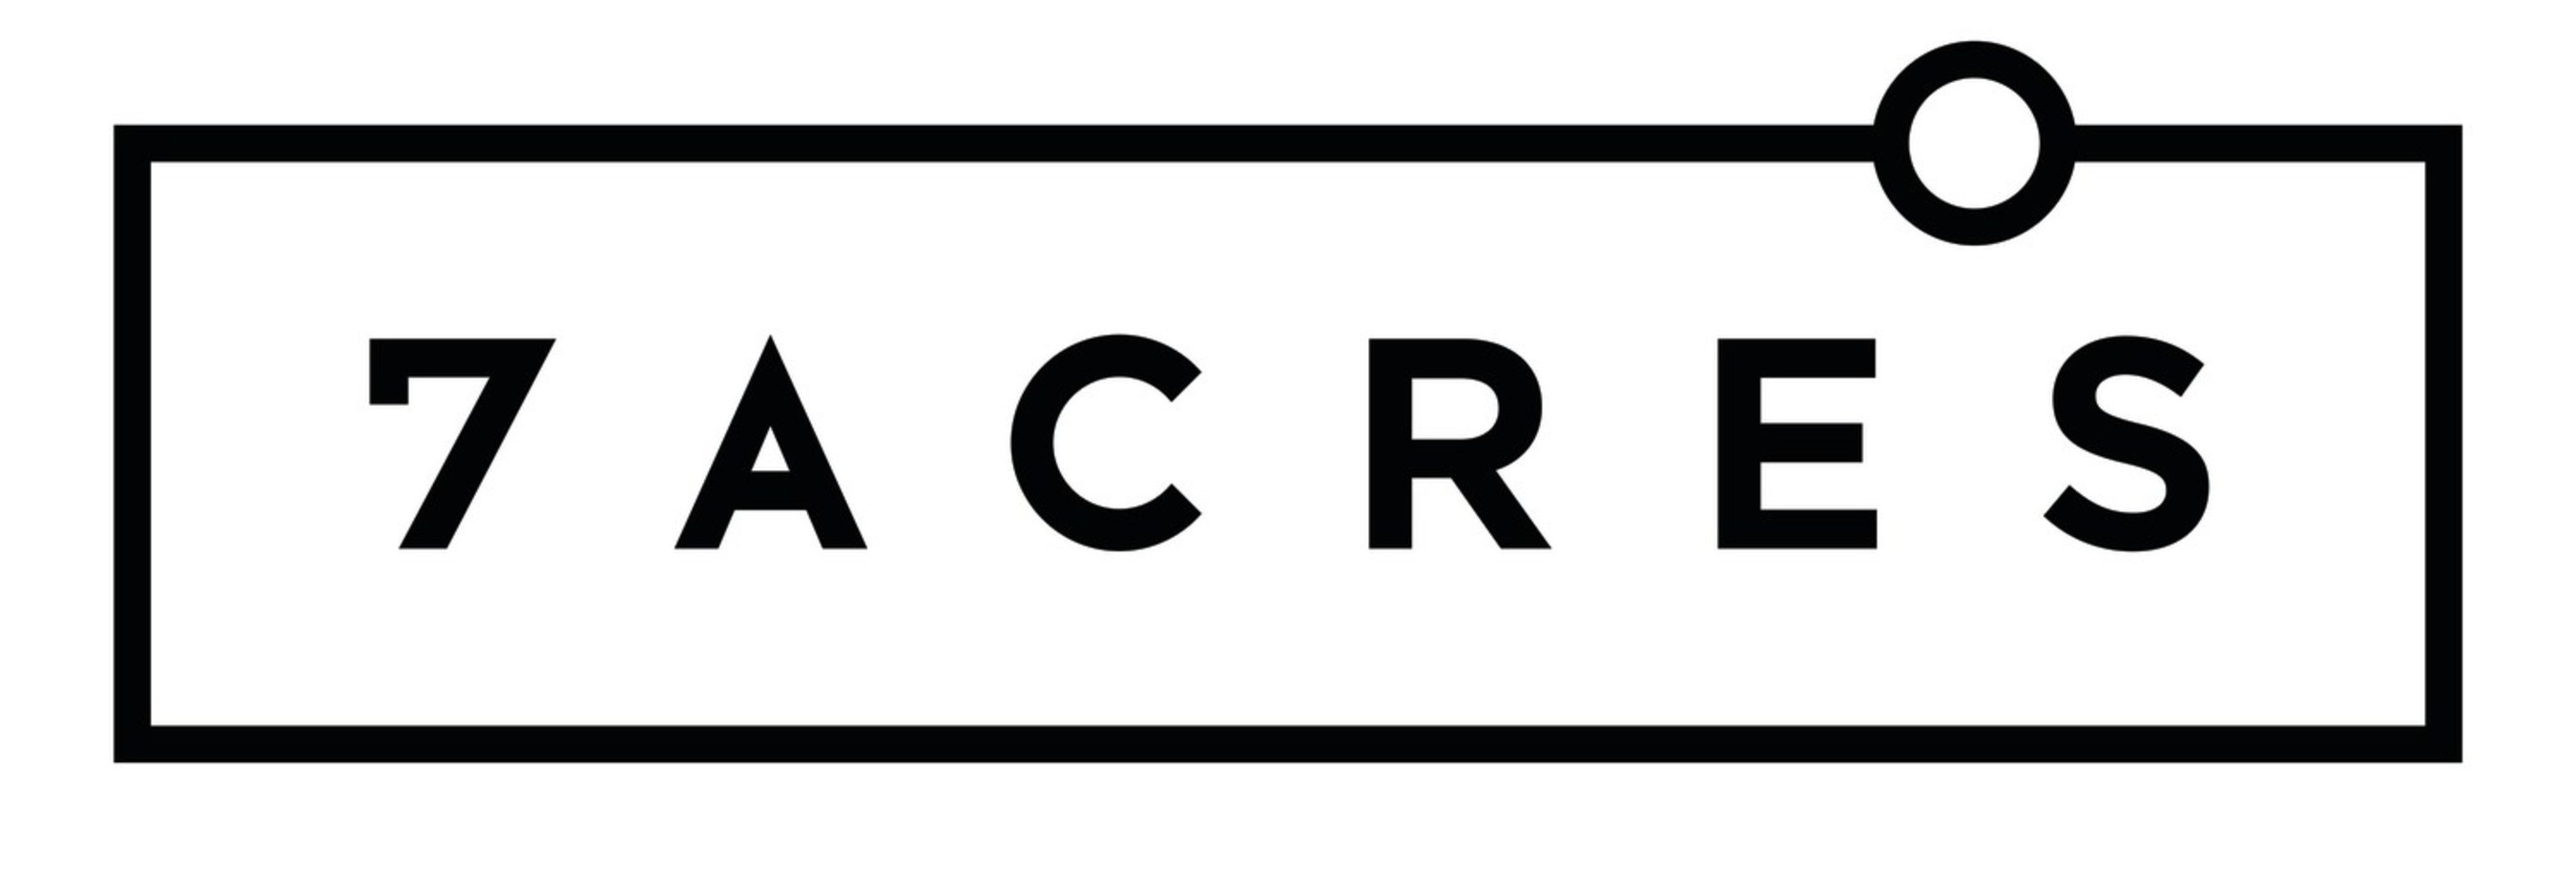 7ACRES, the Canadian Cannabis Awards' 2018 Brand of the Year (CNW Group/The Supreme Cannabis Company, Inc.)